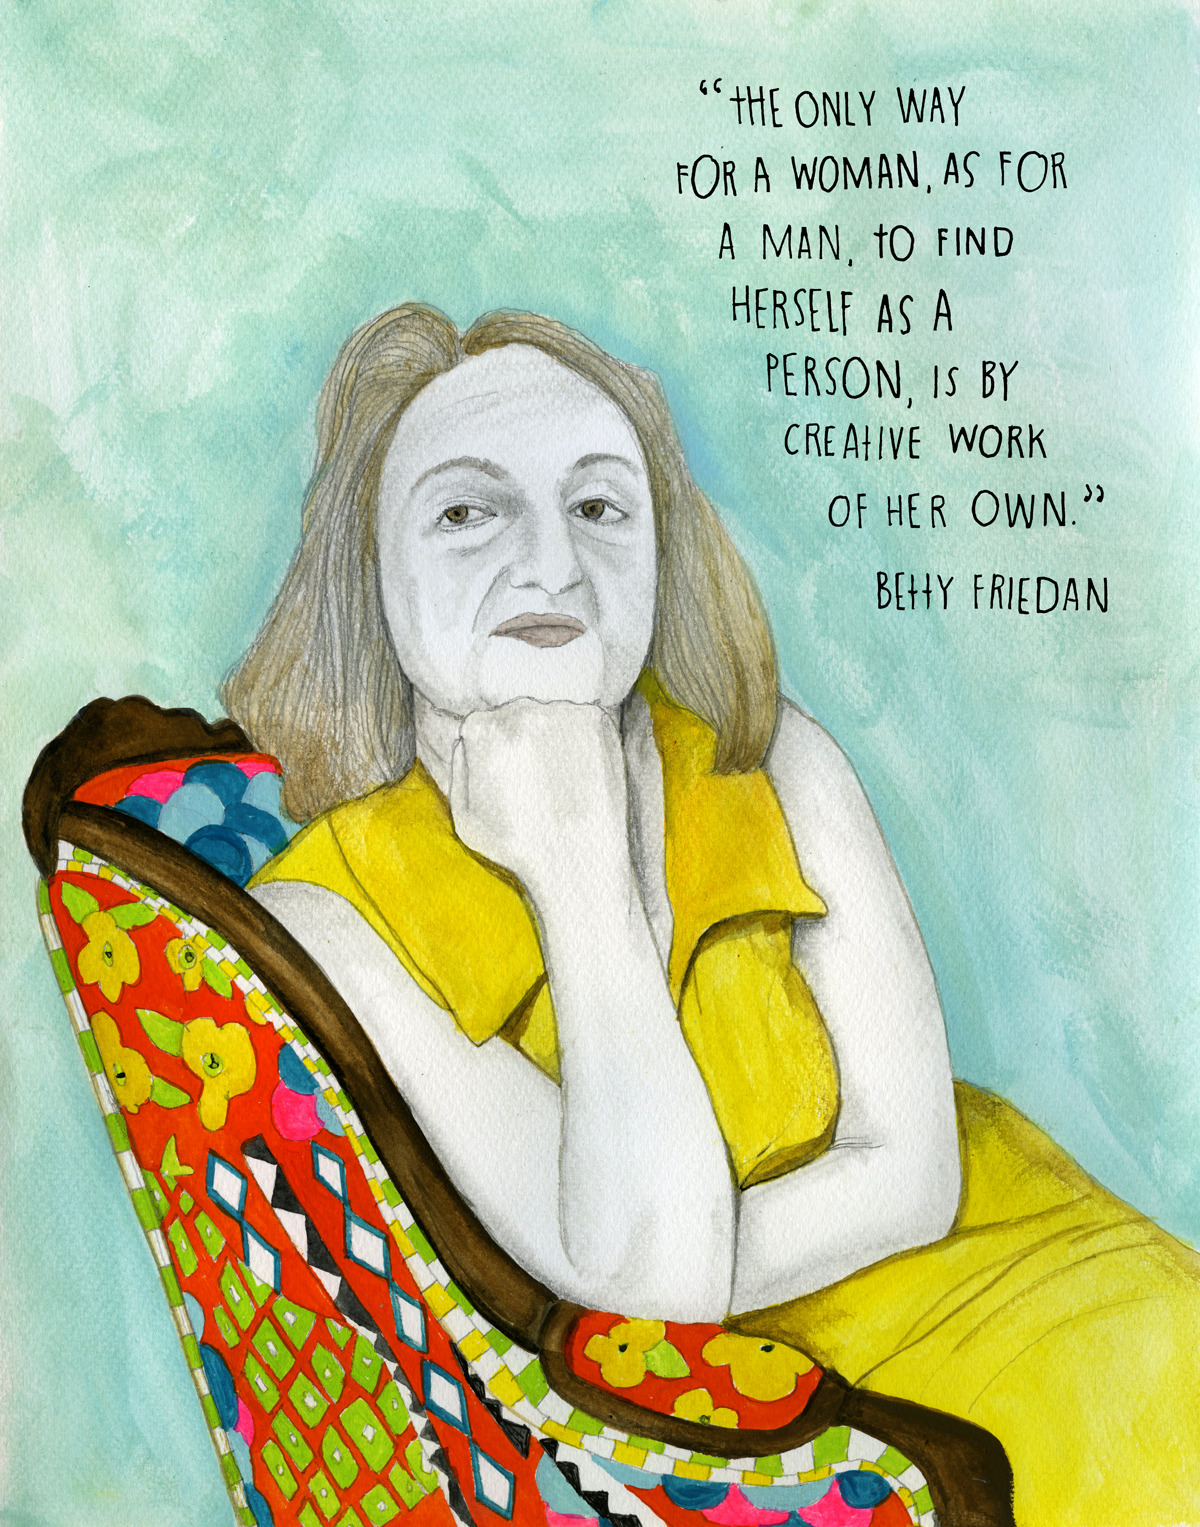 "In 1957, as her 15th college reunion was approaching, writer Betty Friedan (February 4, 1921 — February 4, 2006) set out to survey university graduates about their education, life after college, and their present life-satisfaction. In a series of articles, Friedan noted a recurring pattern — the quiet, recondite, yet intense unhappiness of women in the golden age of the housewife. Termed ""the problem that has no name,"" it spurred an outpour of passionate responses from women for whom it resonated deeply. Friedan wrote:  The shores are strewn with the casualties of the feminine mystique. They did give up their own education to put their husbands through college, and then, maybe against their own wishes, ten or fifteen years later, they were left in the lurch by divorce. The strongest were able to cope more or less well, but it wasn't that easy for a woman of forty-five or fifty to move ahead in a profession and make a new life for herself and her children or herself alone.  In 1963, after witnessing the profound cultural resonance of the topic, Friedan reworked the articles into The Feminine Mystique, which went on to ignite the second wave of modern feminism and to become the most influential book on gender politics in contemporary history. It championed women's reproductive rights, called for better education, criticized workplace laws and cultural attitudes towards childcare responsibilities and, above all, advocated for women's right to freely explore the fundamental question of what it means to live a full life. She wrote:  Each suburban wife struggles with it alone. As she made the beds, shopped for groceries, matched slipcover material, ate peanut butter sandwiches with her children, chauffeured Cub Scouts and Brownies, lay beside her husband at night — she was afraid to ask even of herself the silent question — 'Is this all?'  In 1970, on the 50th anniversary of the Nineteenth Amendment, which granted American women the right to vote, Friedan organized the nation-wide Women's Strike for Equality. It culminated with a New York City march led by Friedan herself, which drew 50,000 women and men and became one of the largest marches in history. The following year, she and other front-line feminists founded the National Women's Political Caucus and continued to work tirelessly for the full inclusion of women in mainstream society. Friedan passed away on her 85th birthday, bequeathing a powerful legacy that shaped the feminist movement not merely as relentless advocacy for women's equality but as enduring protection and celebration of the human spirit. Learn more: Wikipedia  